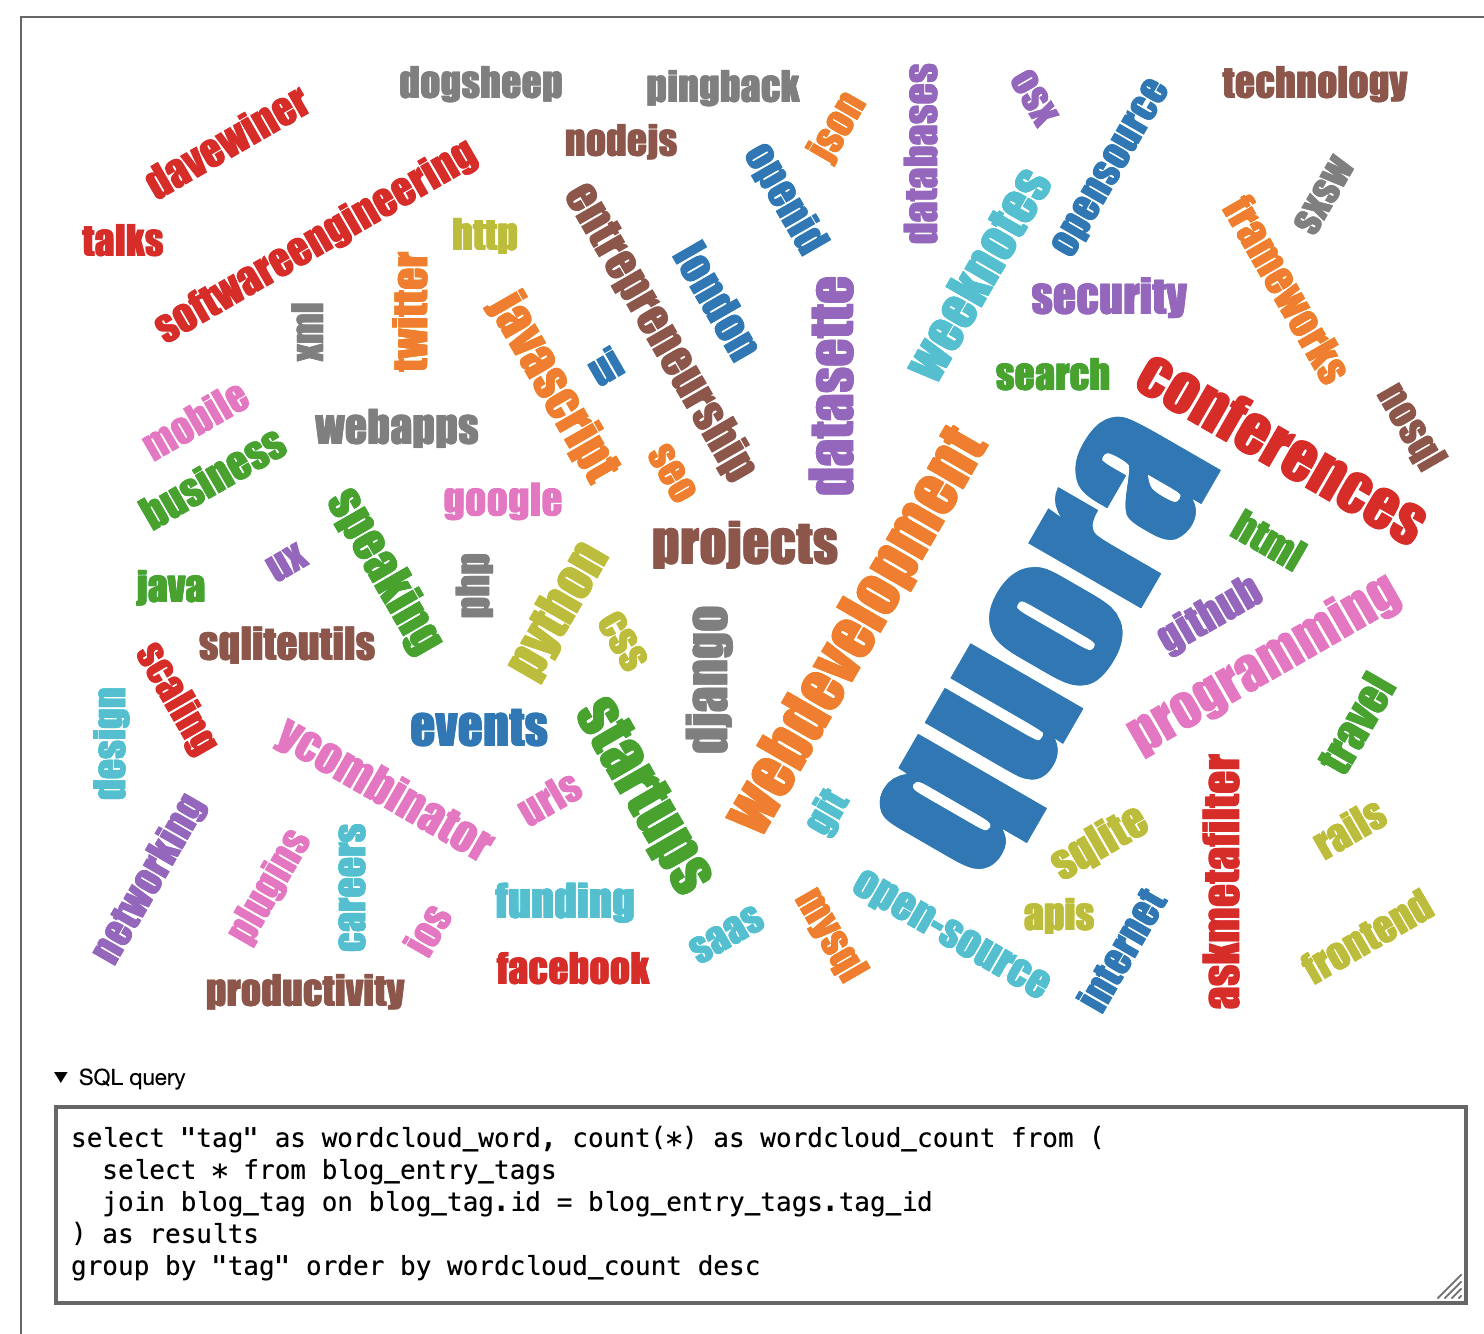 My top tags, visualized as a word cloud